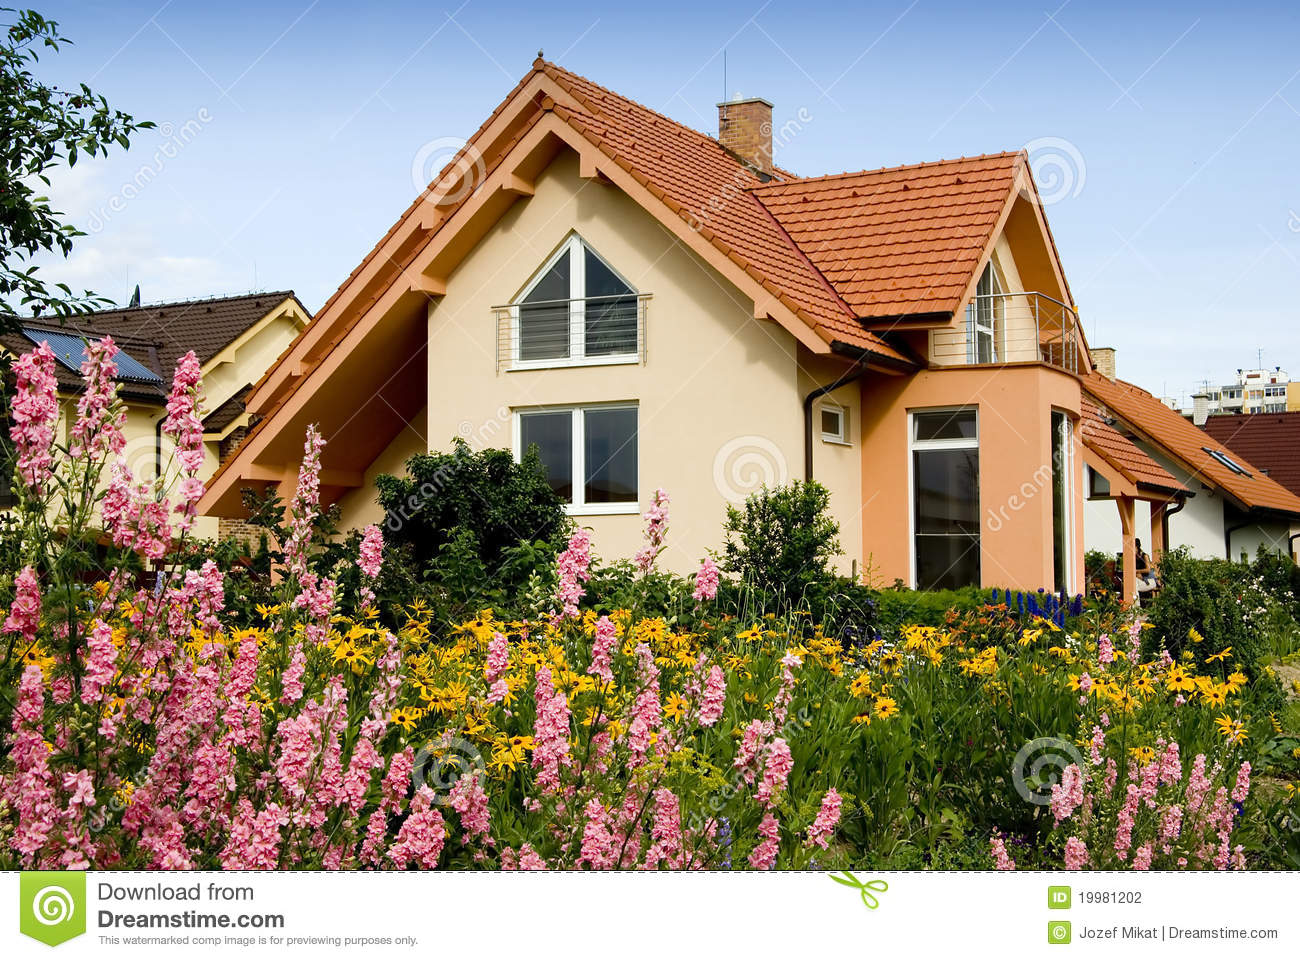 Nice house stock photography image 19981202 for Nice home image